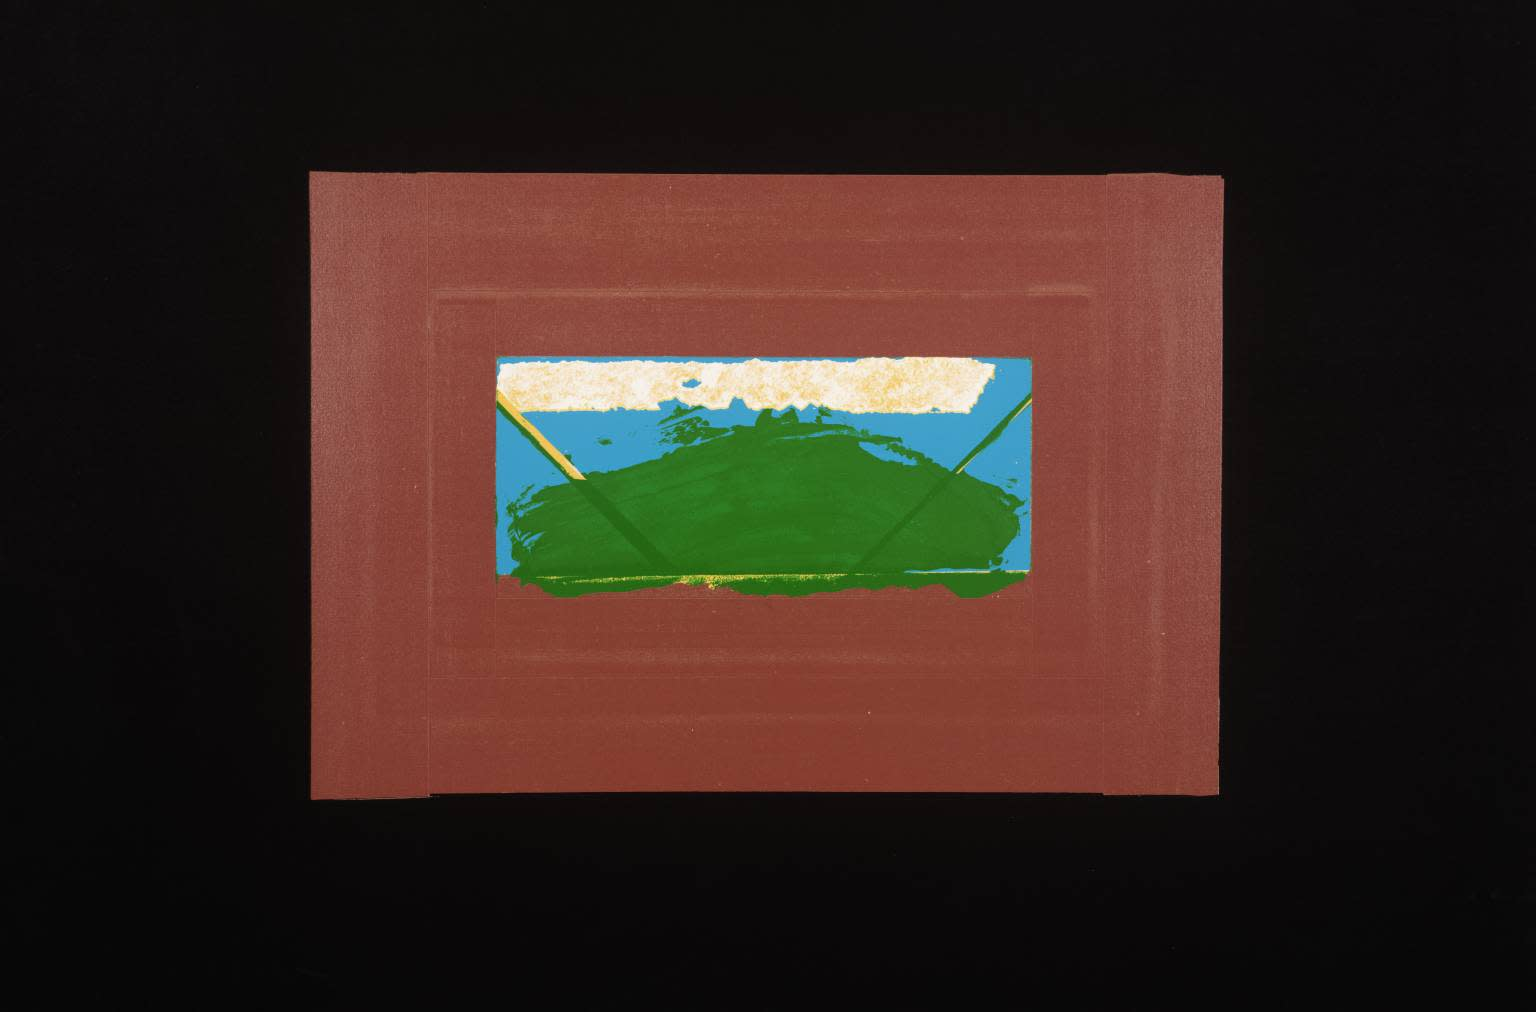 "<span class=""link fancybox-details-link""><a href=""/artists/163-sir-howard-hodgkin-ch-cbe/works/4063-sir-howard-hodgkin-ch-cbe-indian-view-g-1971/"">View Detail Page</a></span><div class=""artist""><strong>Sir Howard Hodgkin CH CBE</strong></div> 1932 – 2017 <div class=""title""><em>Indian View G</em>, 1971</div> <div class=""signed_and_dated"">signed and dated in pencil</div> <div class=""medium"">silkscreen print</div> <div class=""dimensions"">57 x 77 cm</div> <div class=""edition_details"">Edition 5 of 75</div><div class=""copyright_line"">@ The Estate of Howard Hodgkin</div>"